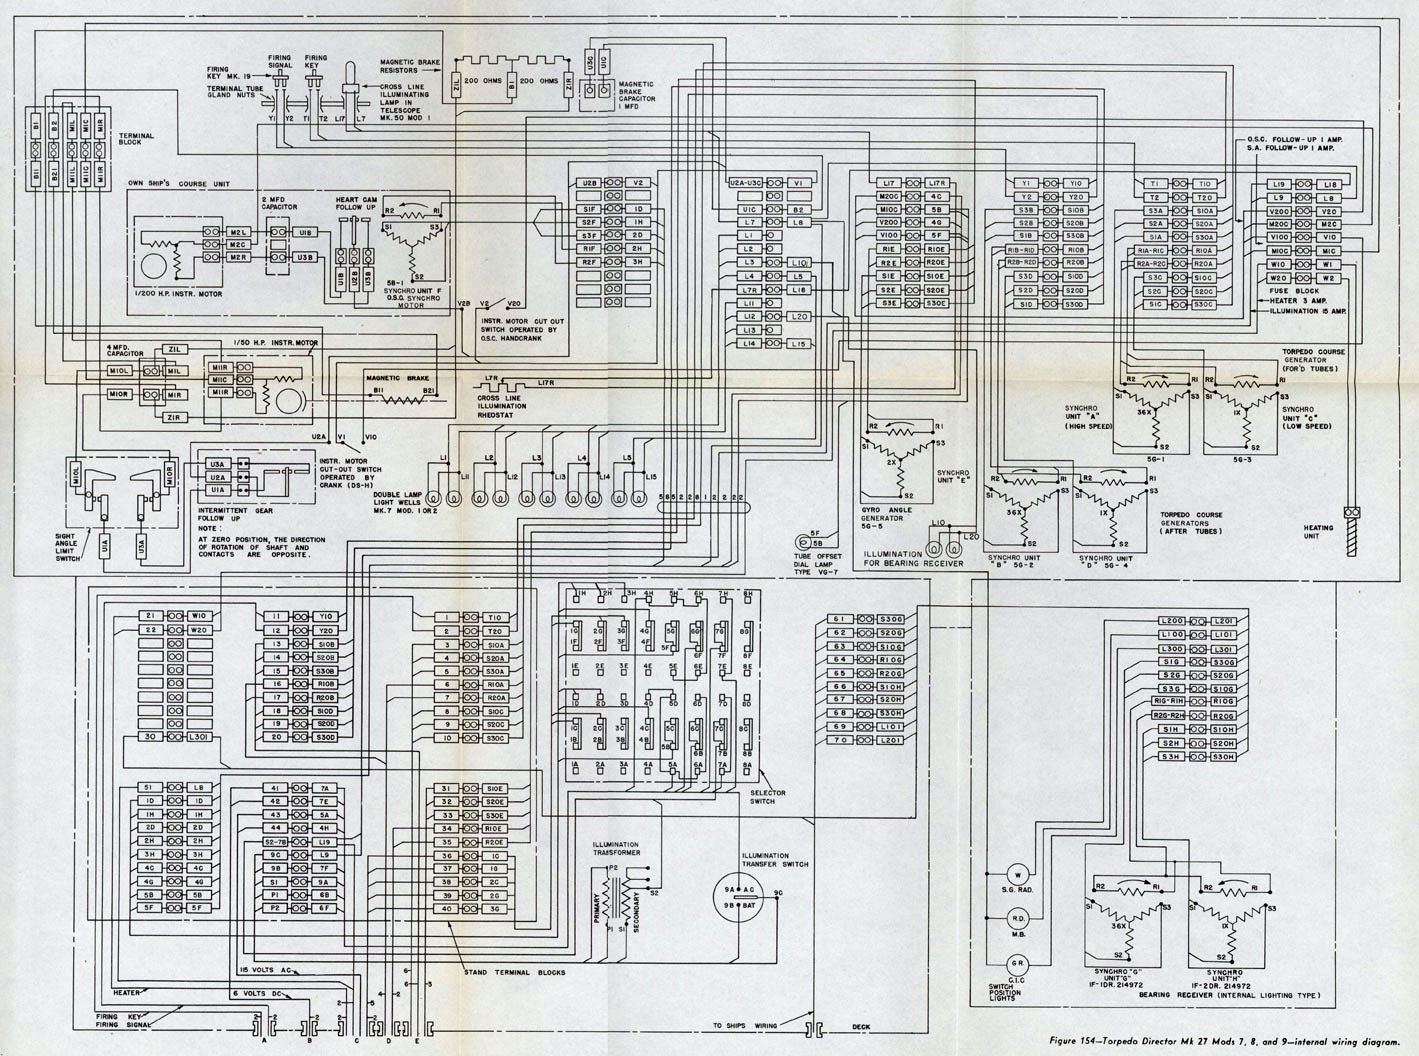 Fiat 130 Wiring Diagram Detailed Diagrams Ducato Image 8 Of 48 I 132 Tutti Modelli Picture 1974 Tiger Truck